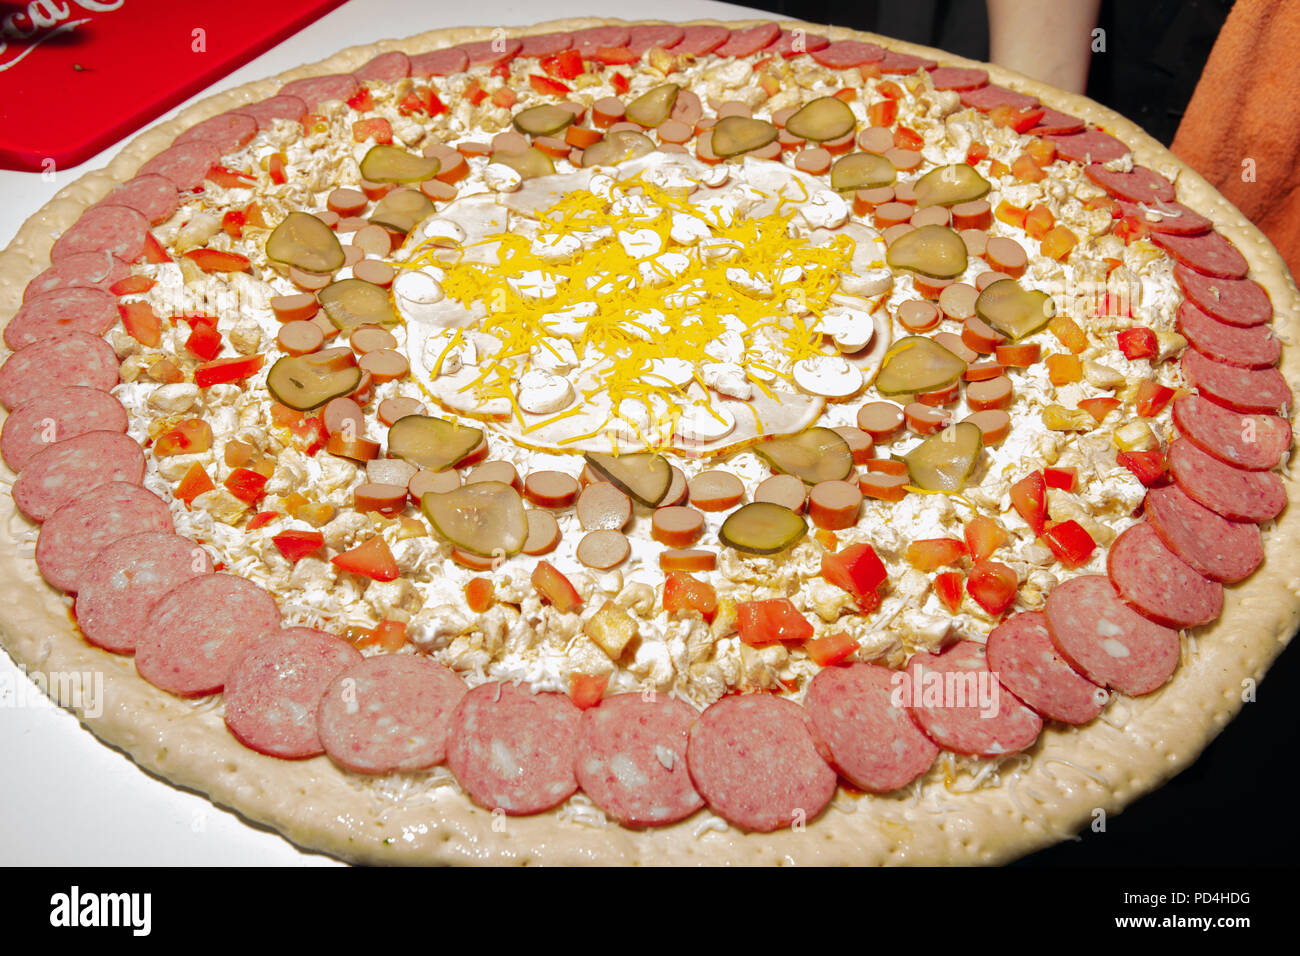 very large pizza, burger, patty, second course in the restaurant, fast food, food, healthy food Stock Photo